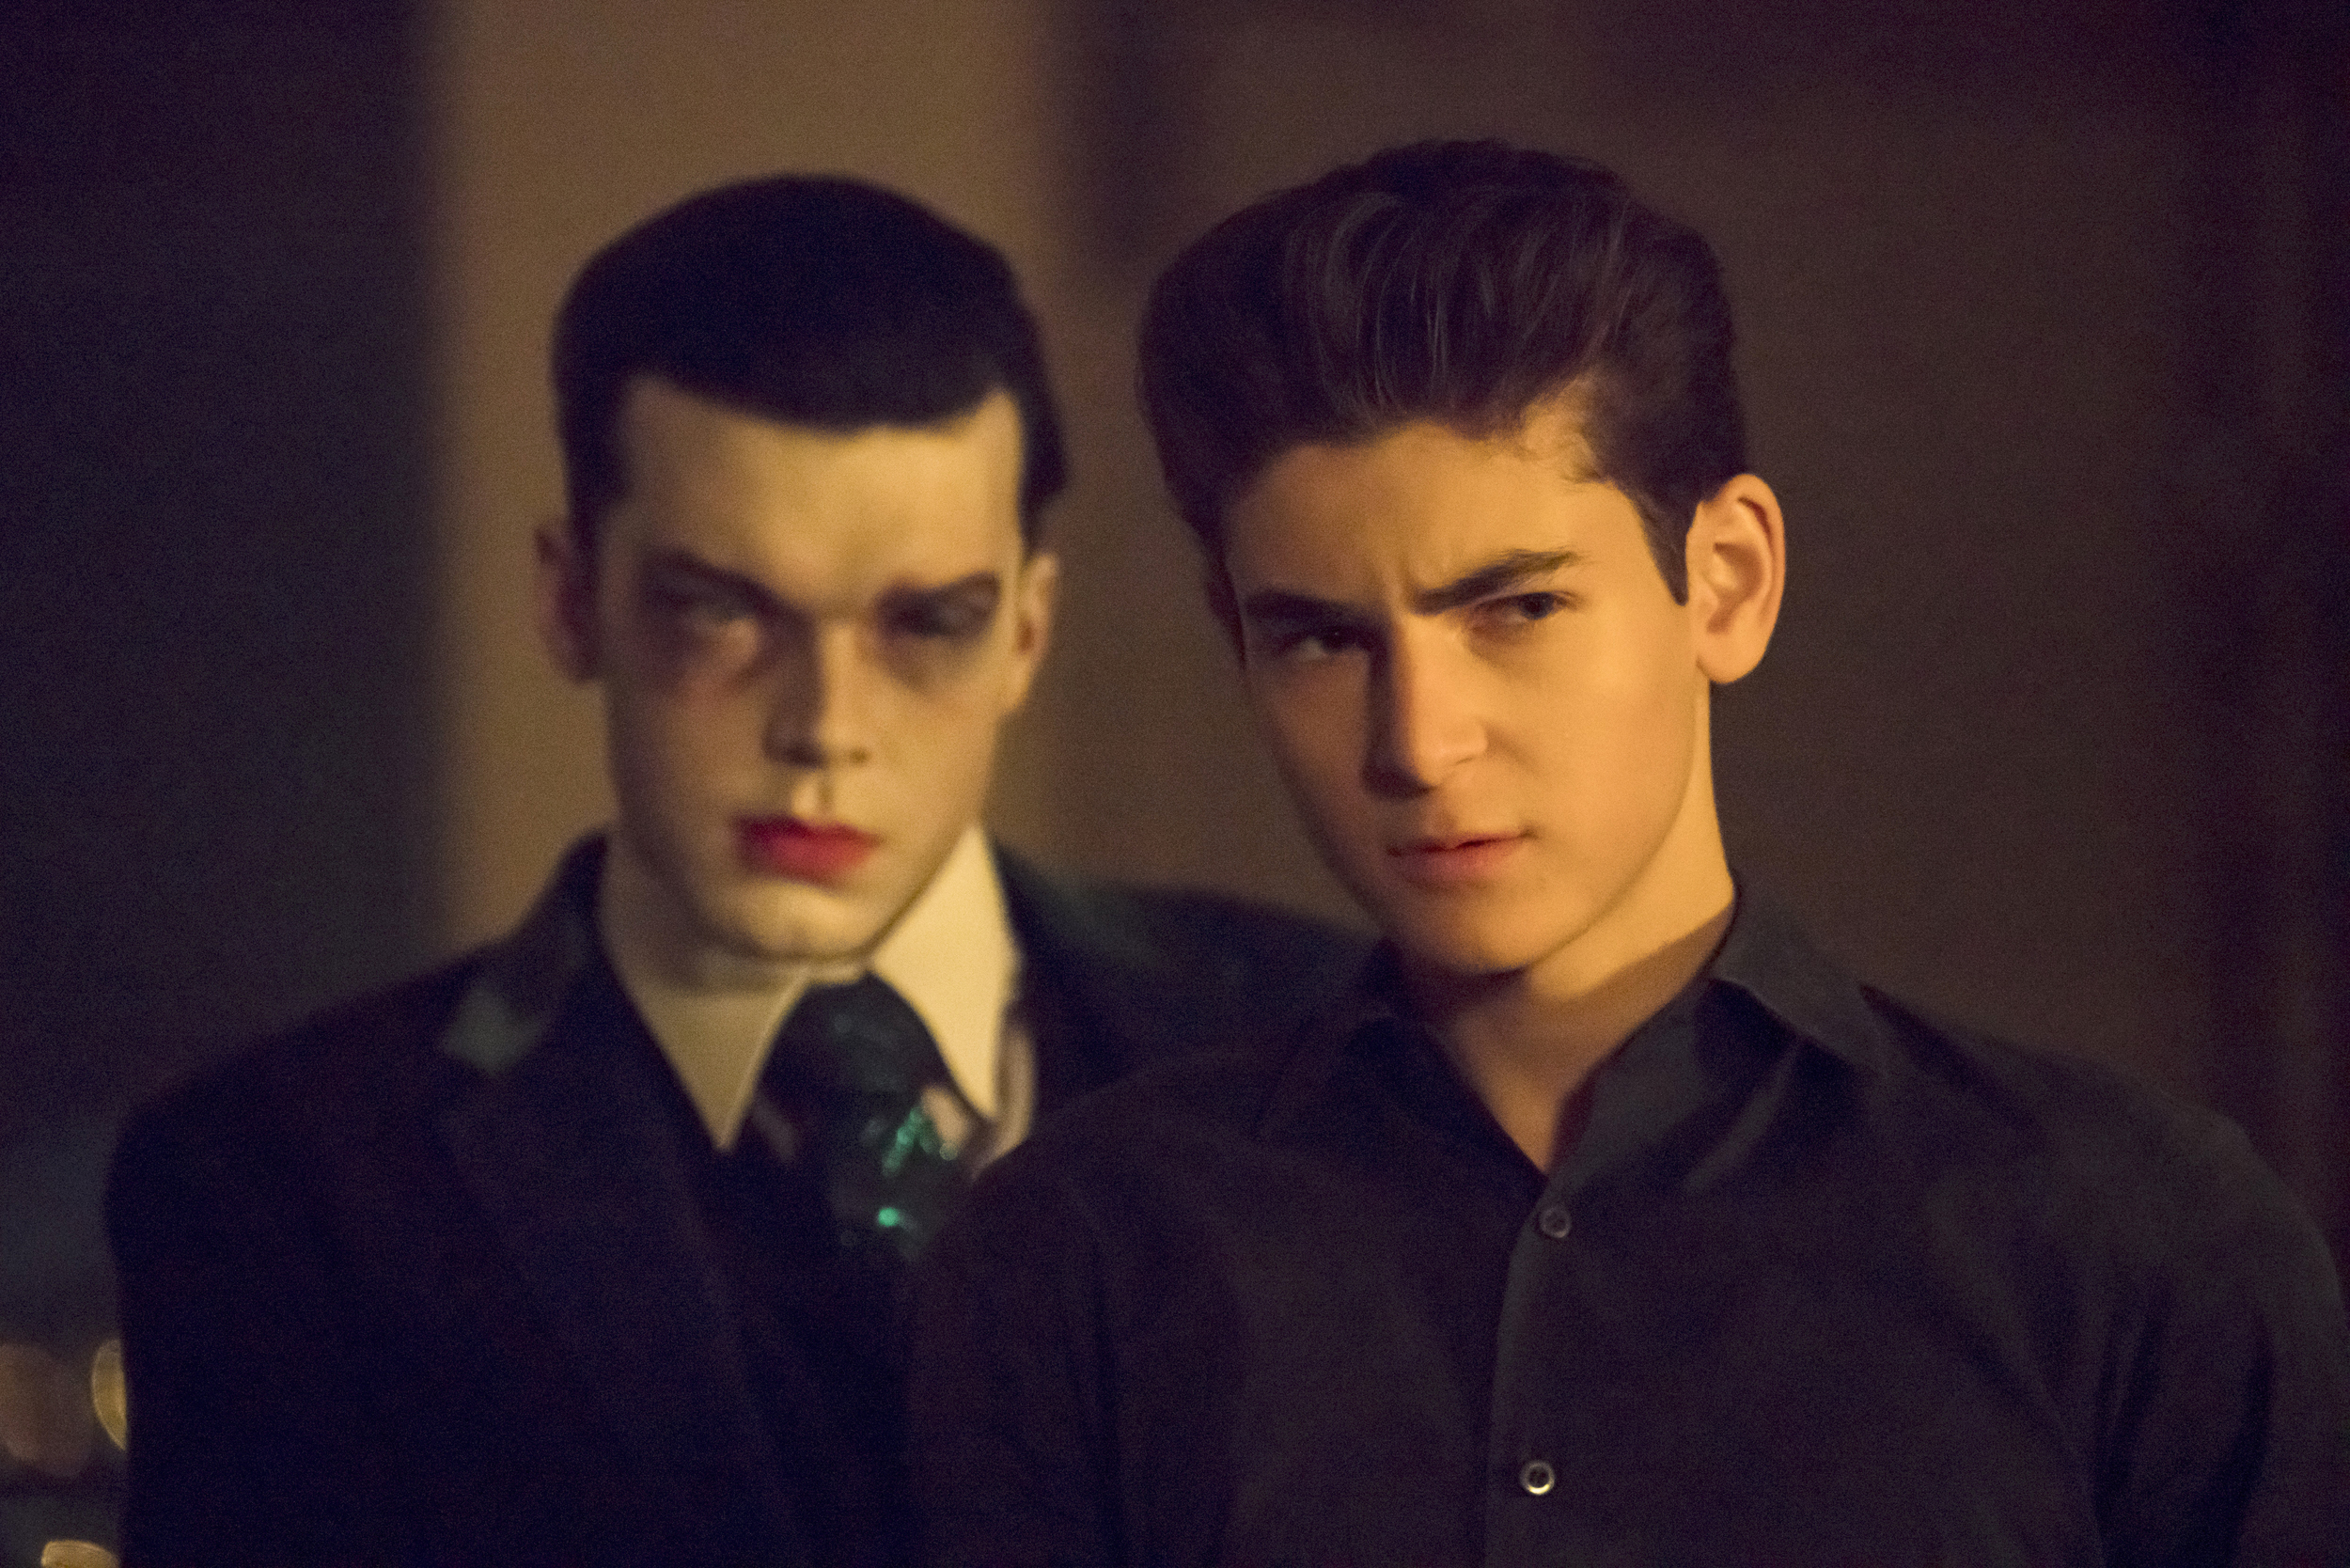 Cameron Monaghan and David Mazouz in Gotham (2014)